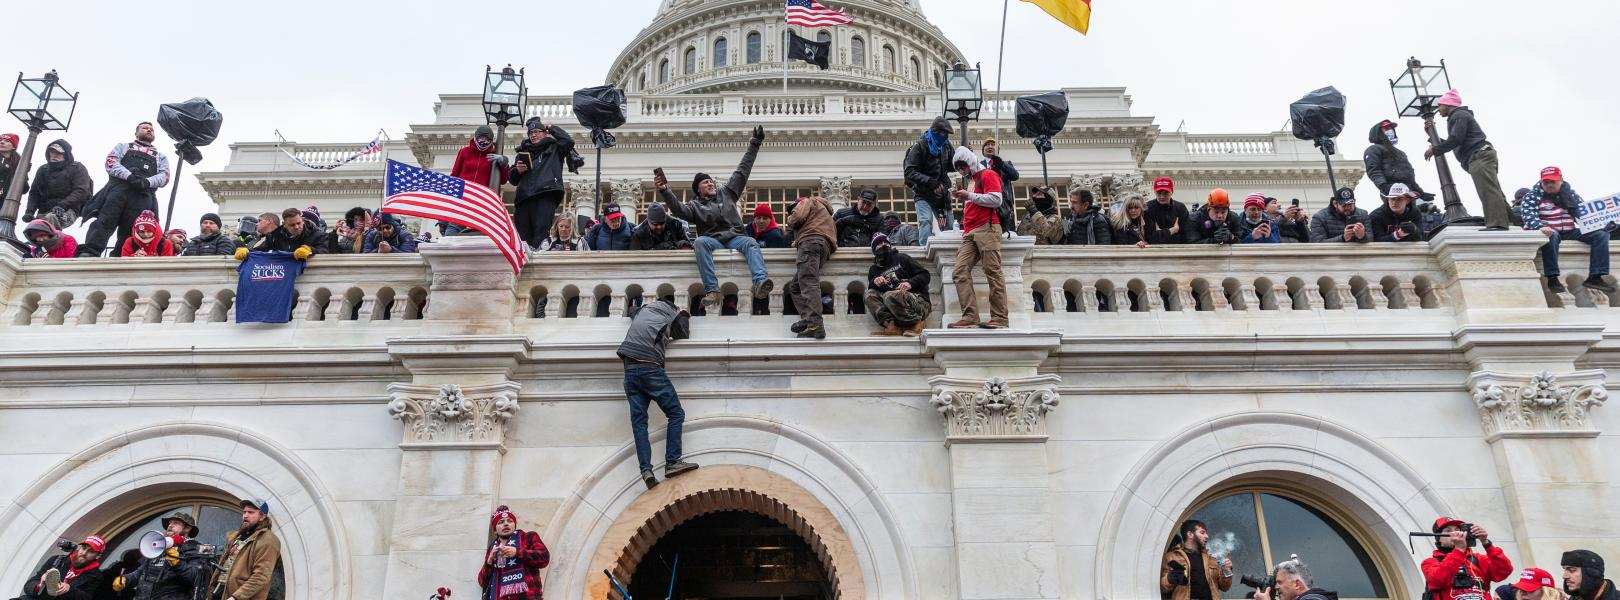 January 6 attack on Capitol building